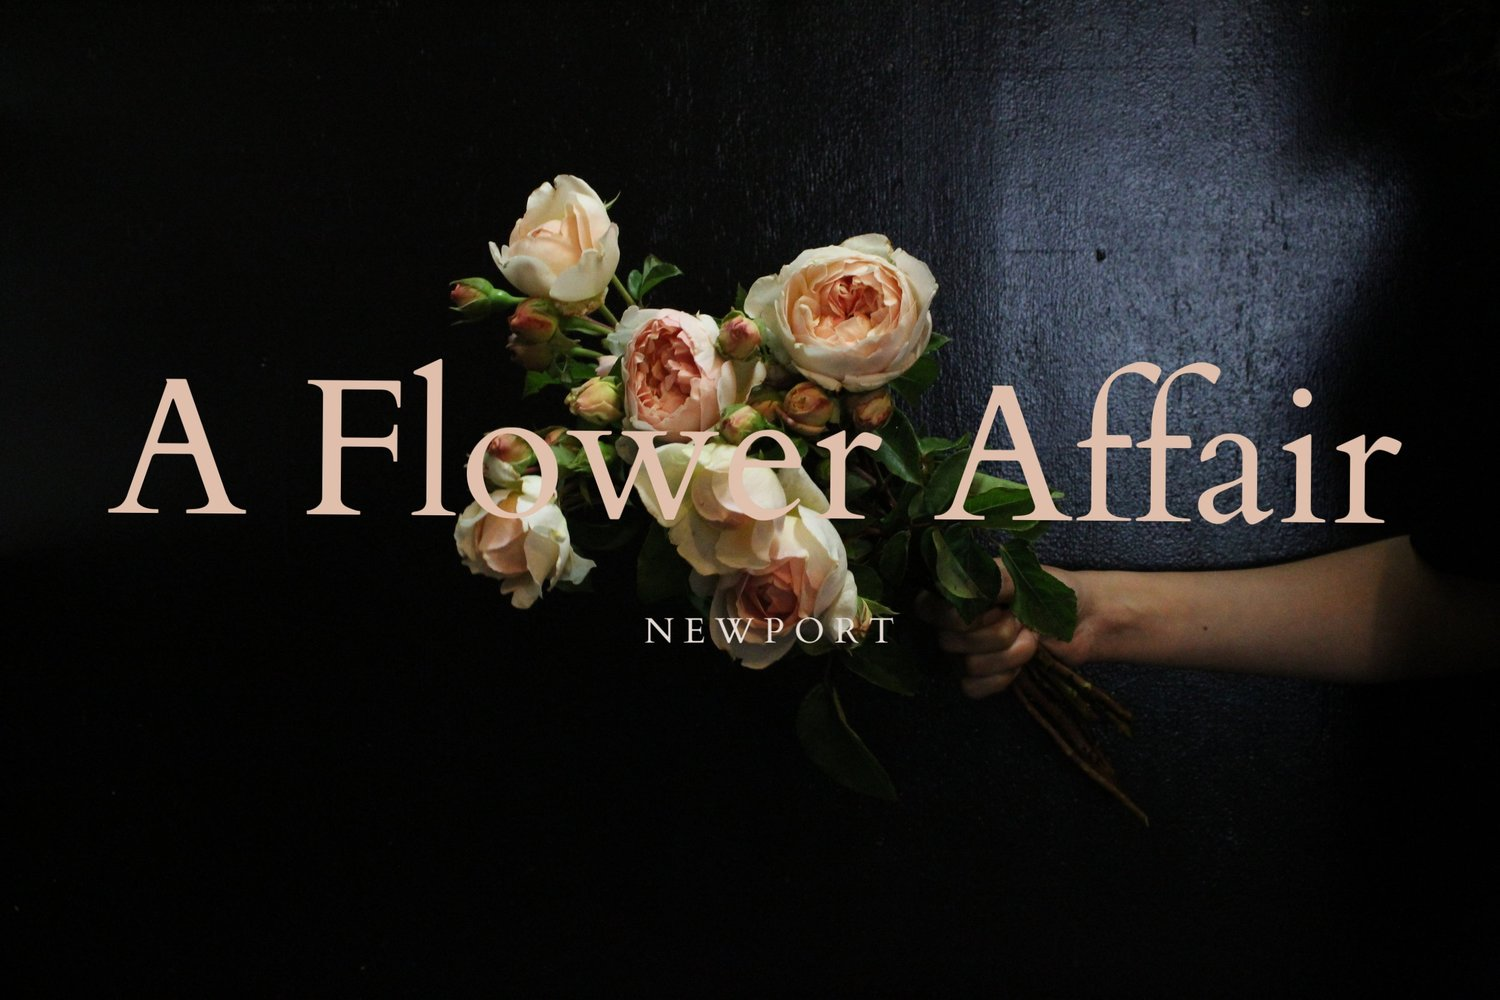 A Flower Affair